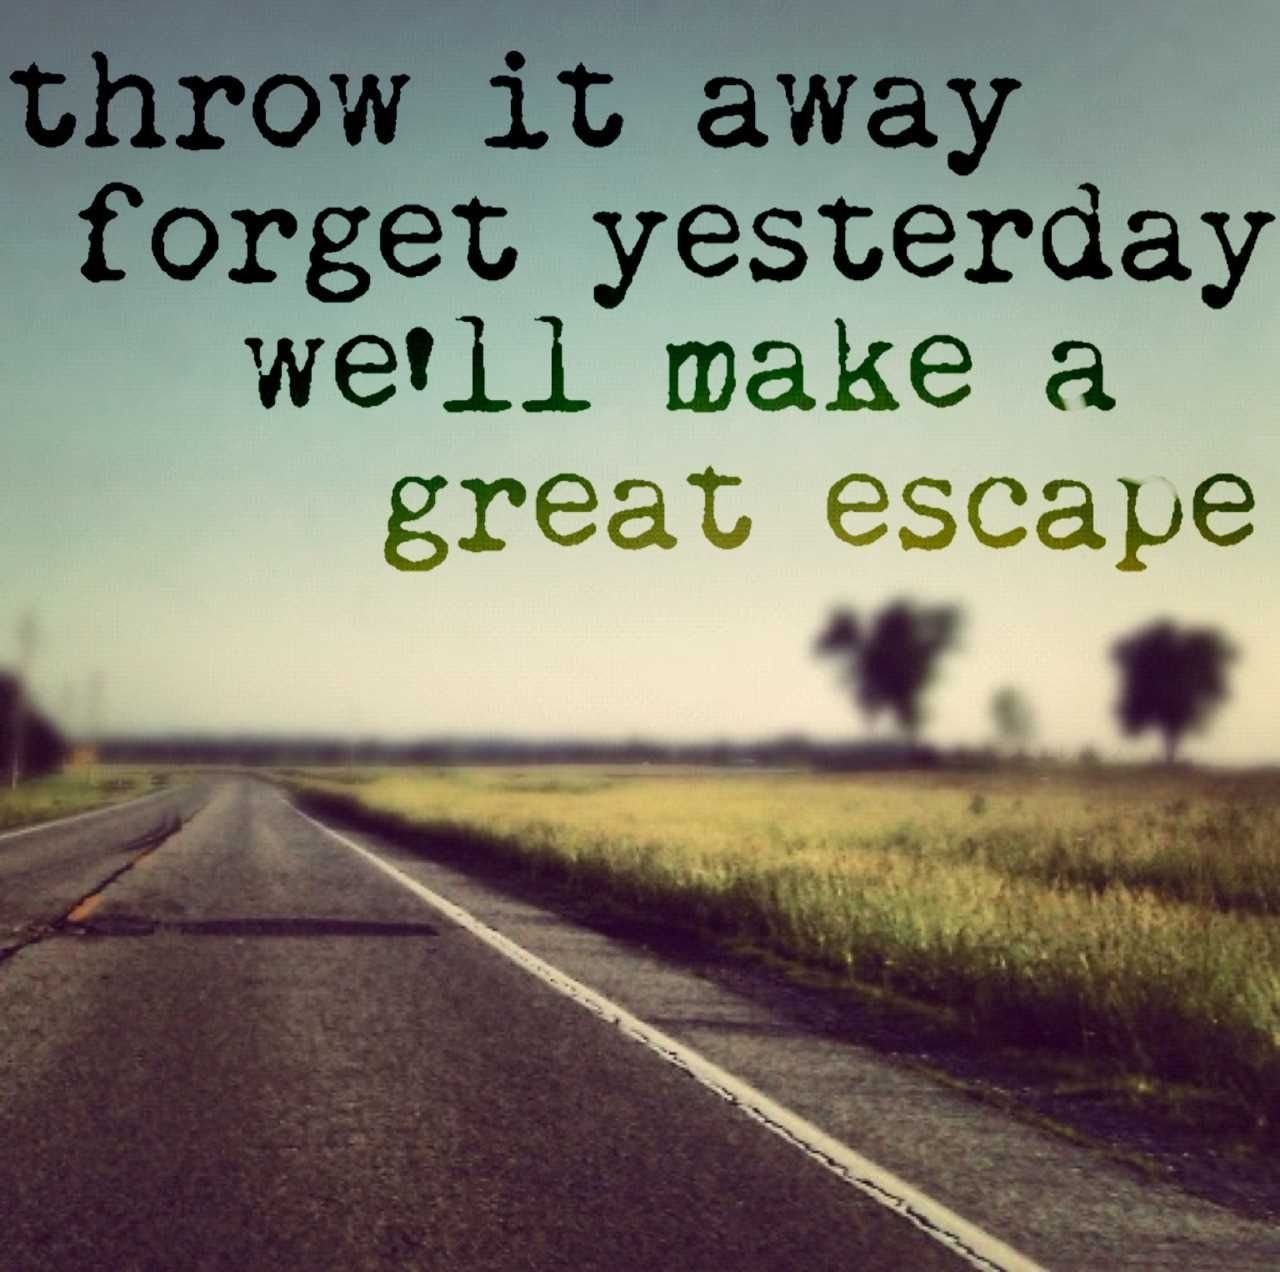 Escape Quotes: We'll Make A Great Escape Pictures, Photos, And Images For